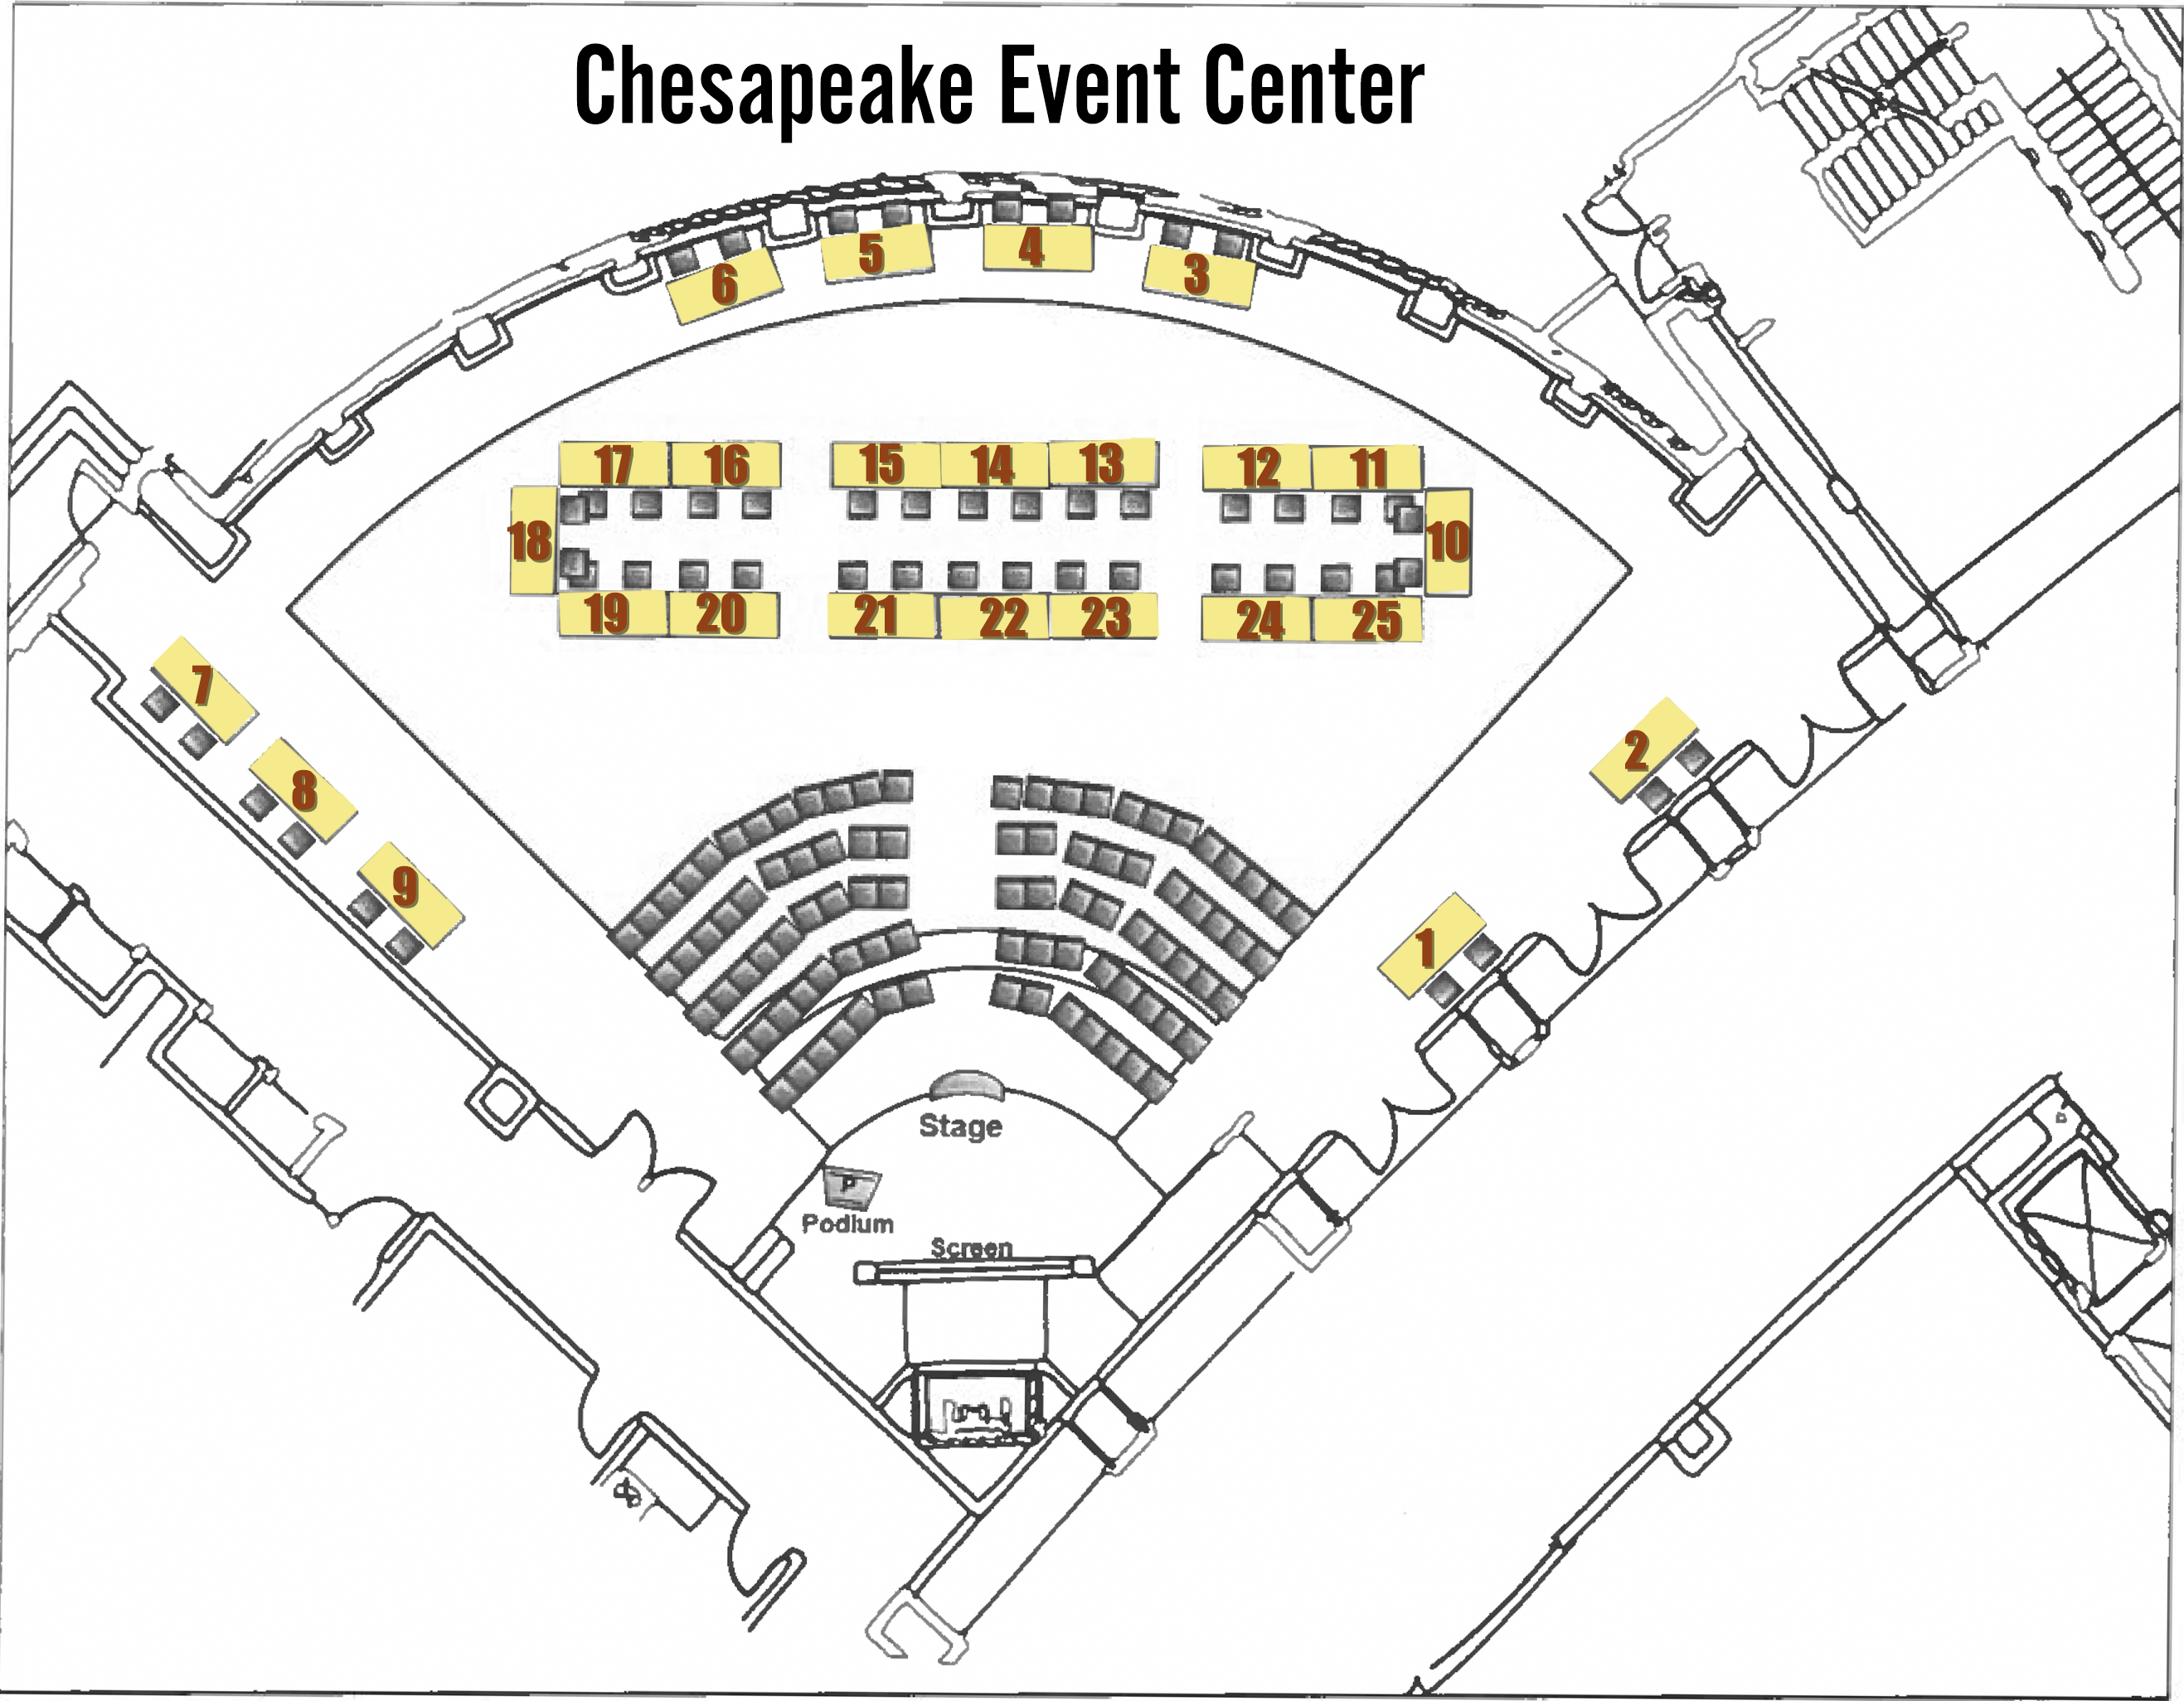 Floor plan of the table set up in the Chesapeake Event Center